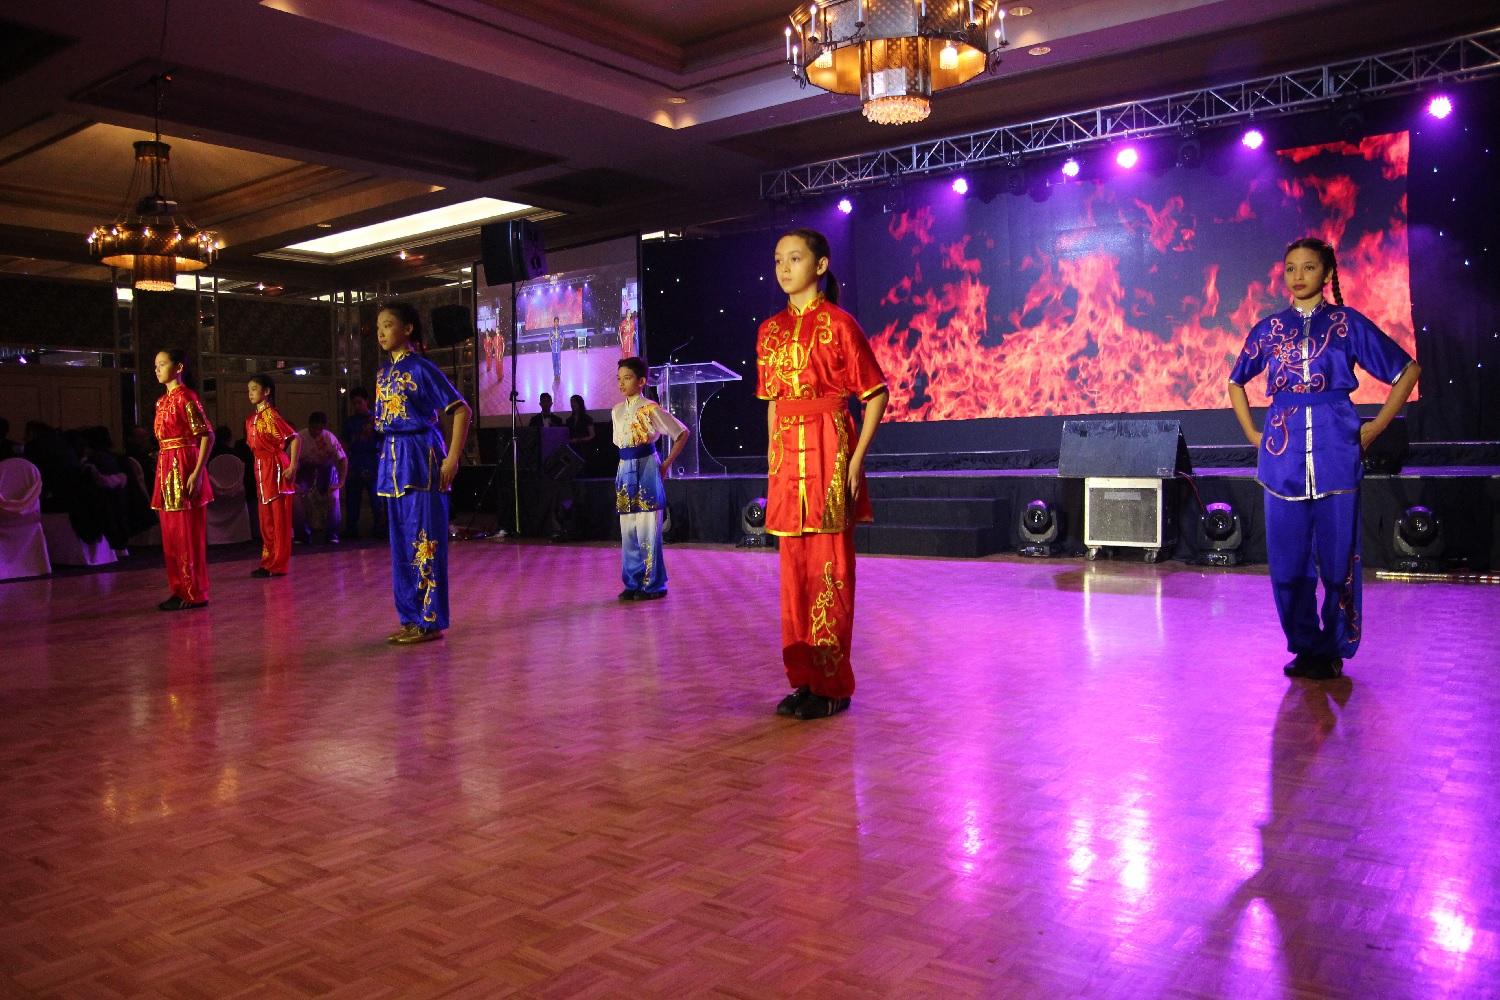 wayland-li-wushu-toronto-golden-daffodil-demonstration-team-1.jpg